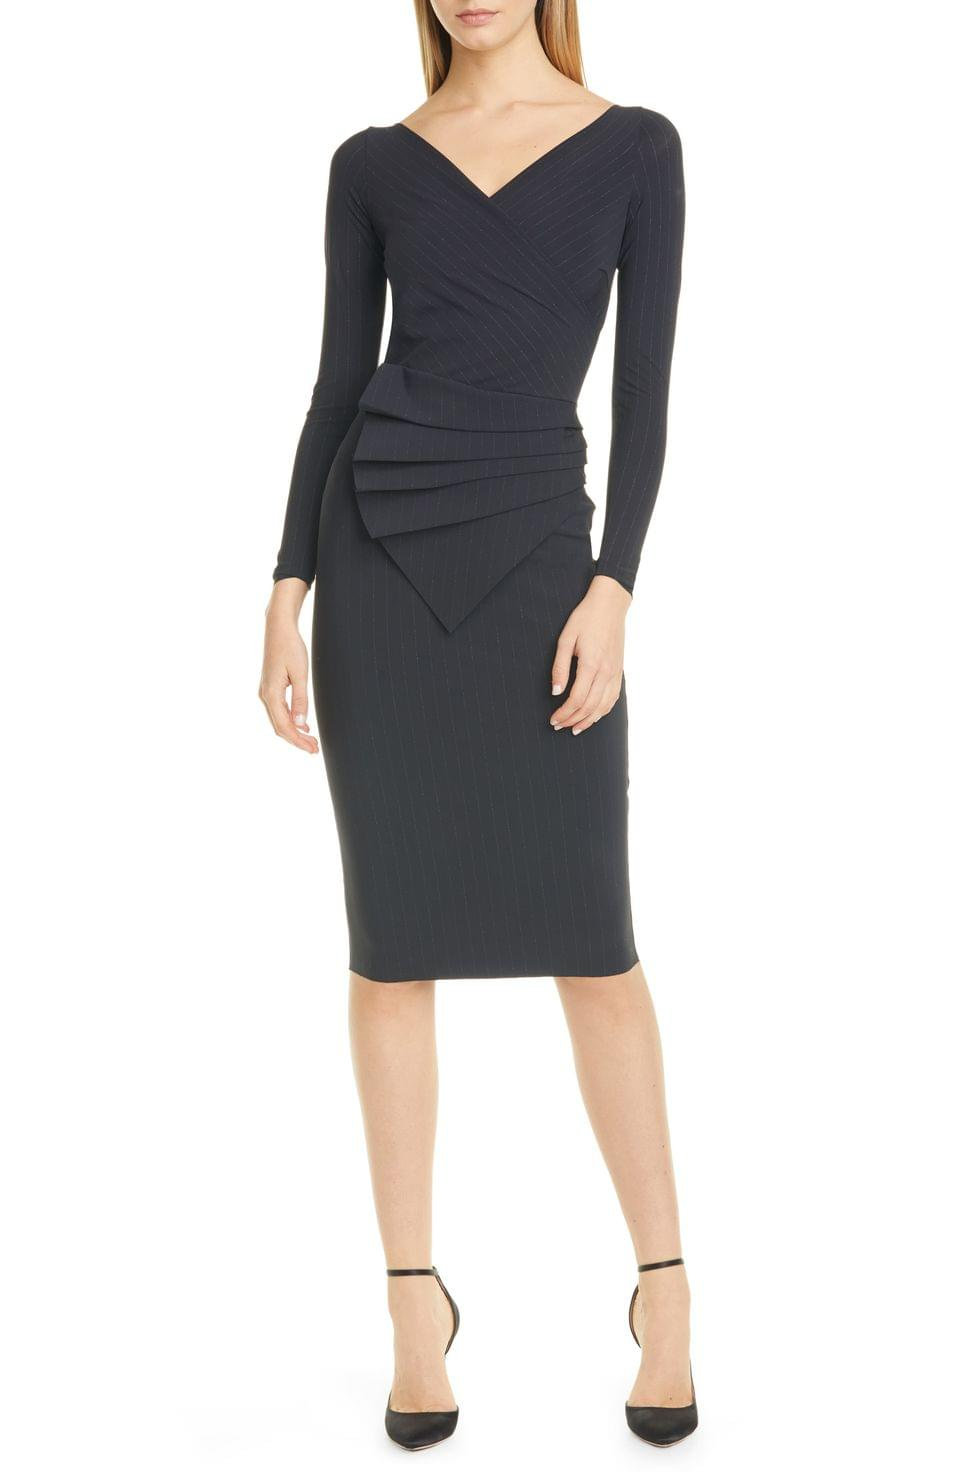 Women's Chiara Boni La Petite Robe Kaya Long Sleeve Ruffle Cocktail Dress